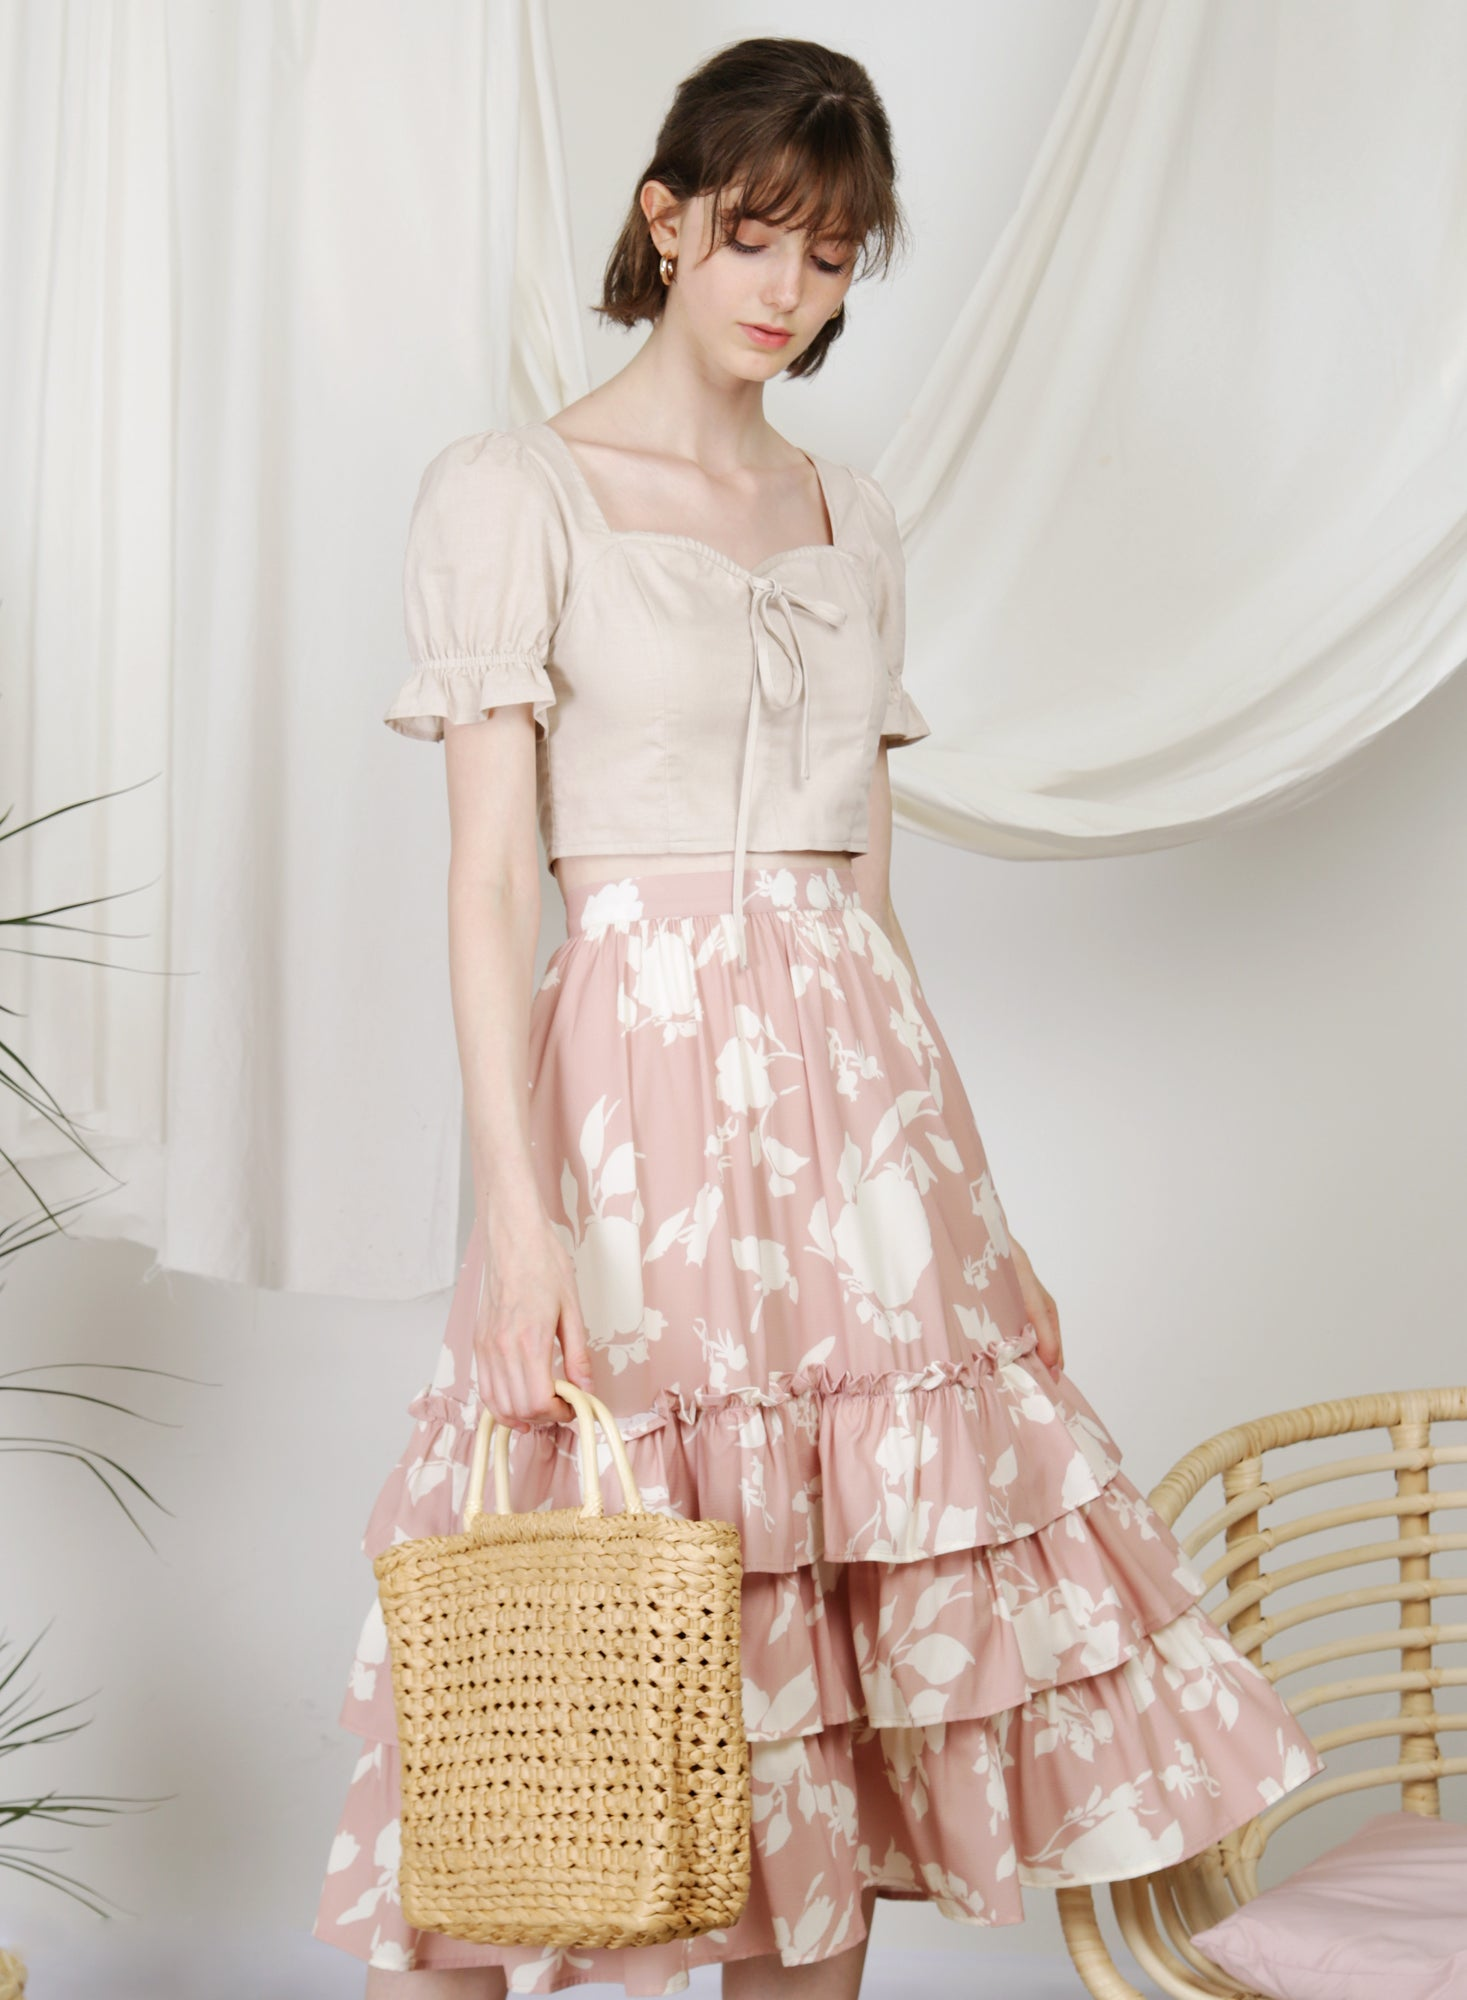 Dream Puff Sleeves Top (Oat) at $ 38.00 only sold at And Well Dressed Online Fashion Store Singapore